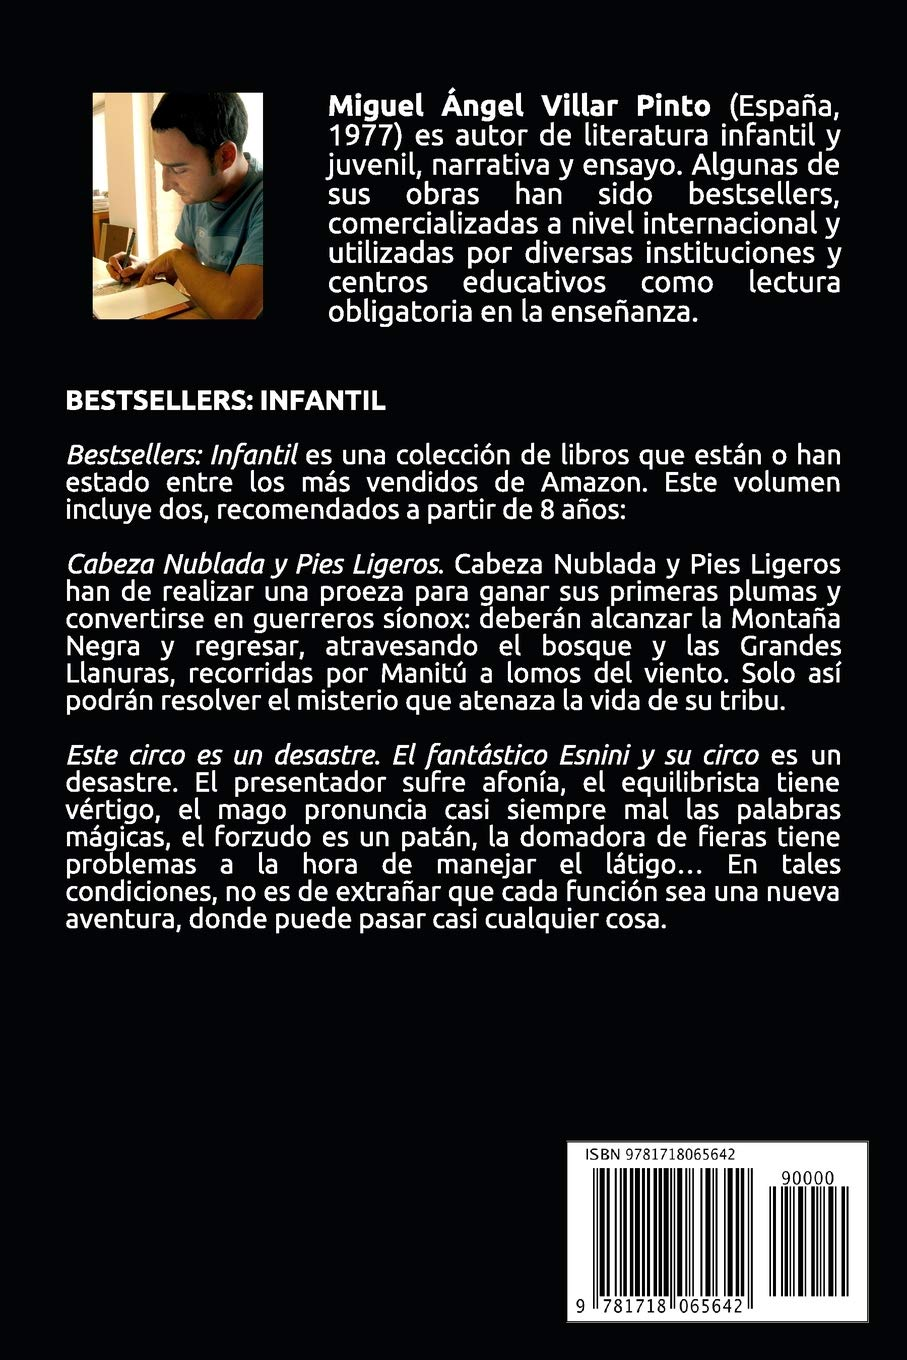 Bestsellers: Infantil (Spanish Edition): Miguel Ángel Villar Pinto:  9781718065642: Amazon